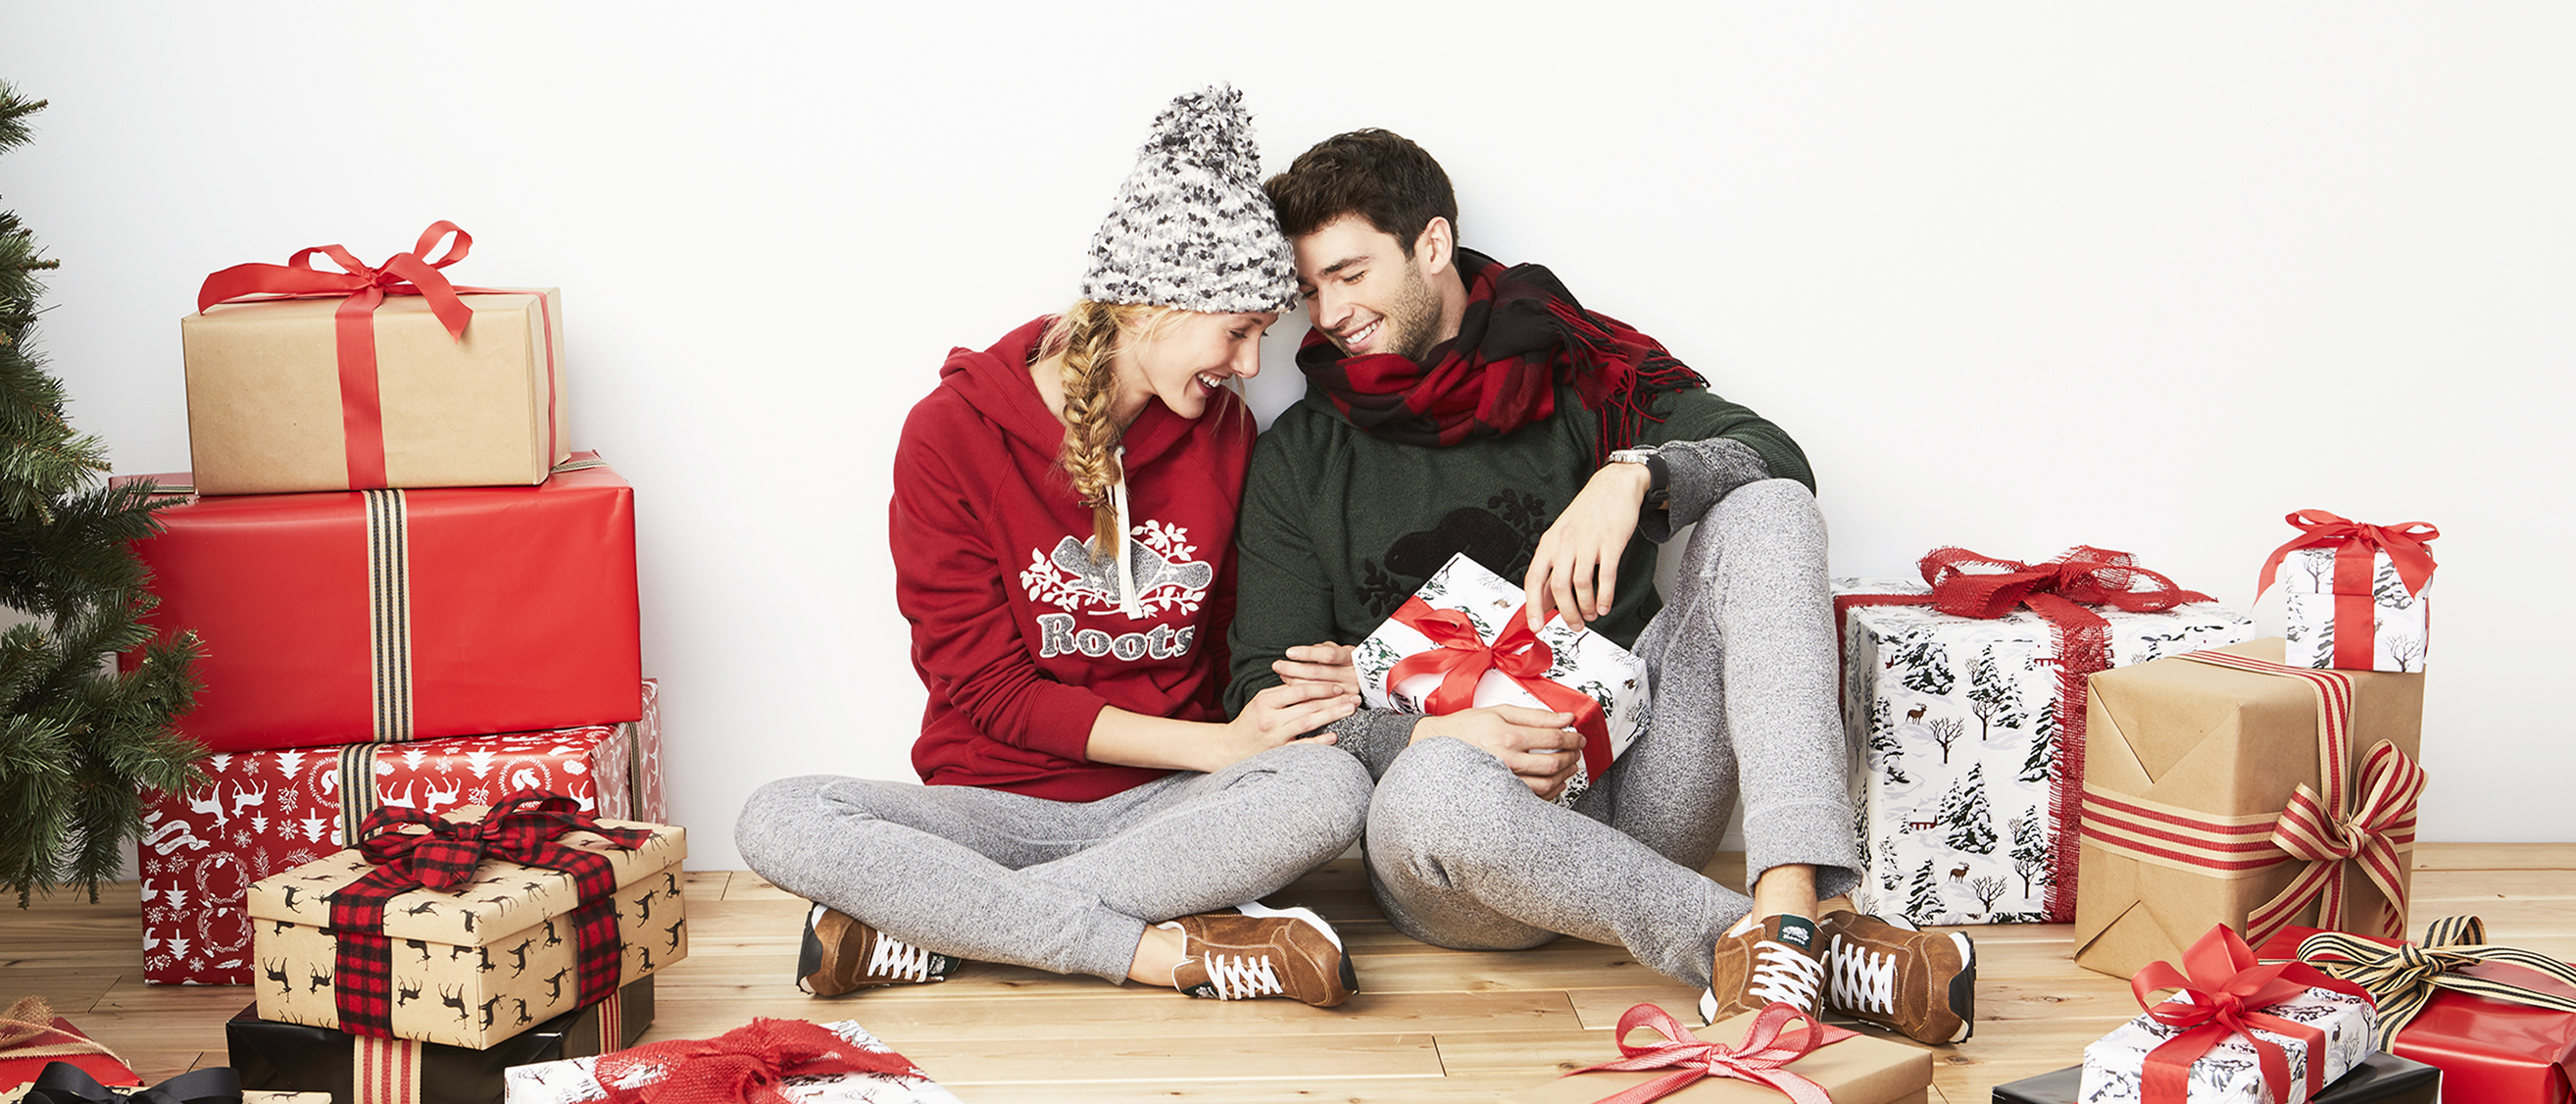 Hero image - Couple unwrapping presents beside a christmas tree